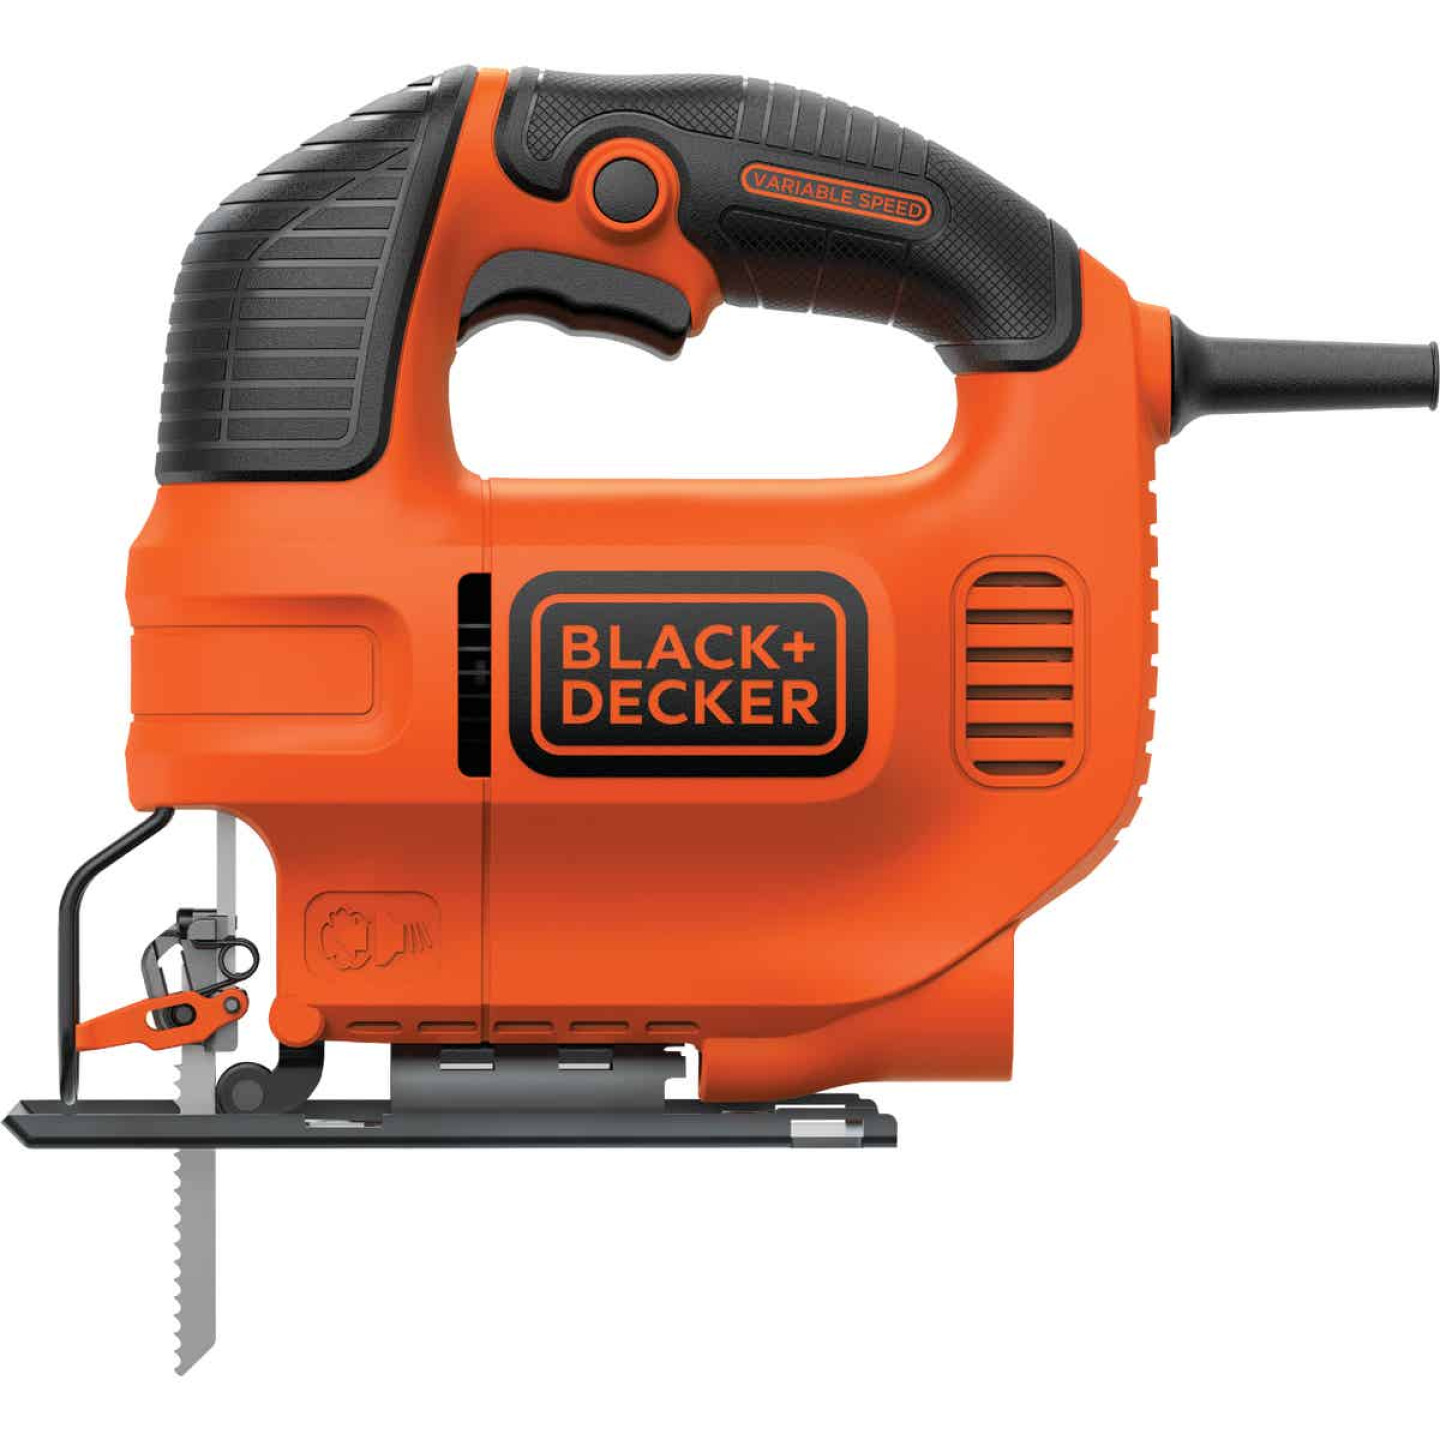 Black & Decker 4.5A 0 to 3000 SPM Jig Saw Image 4